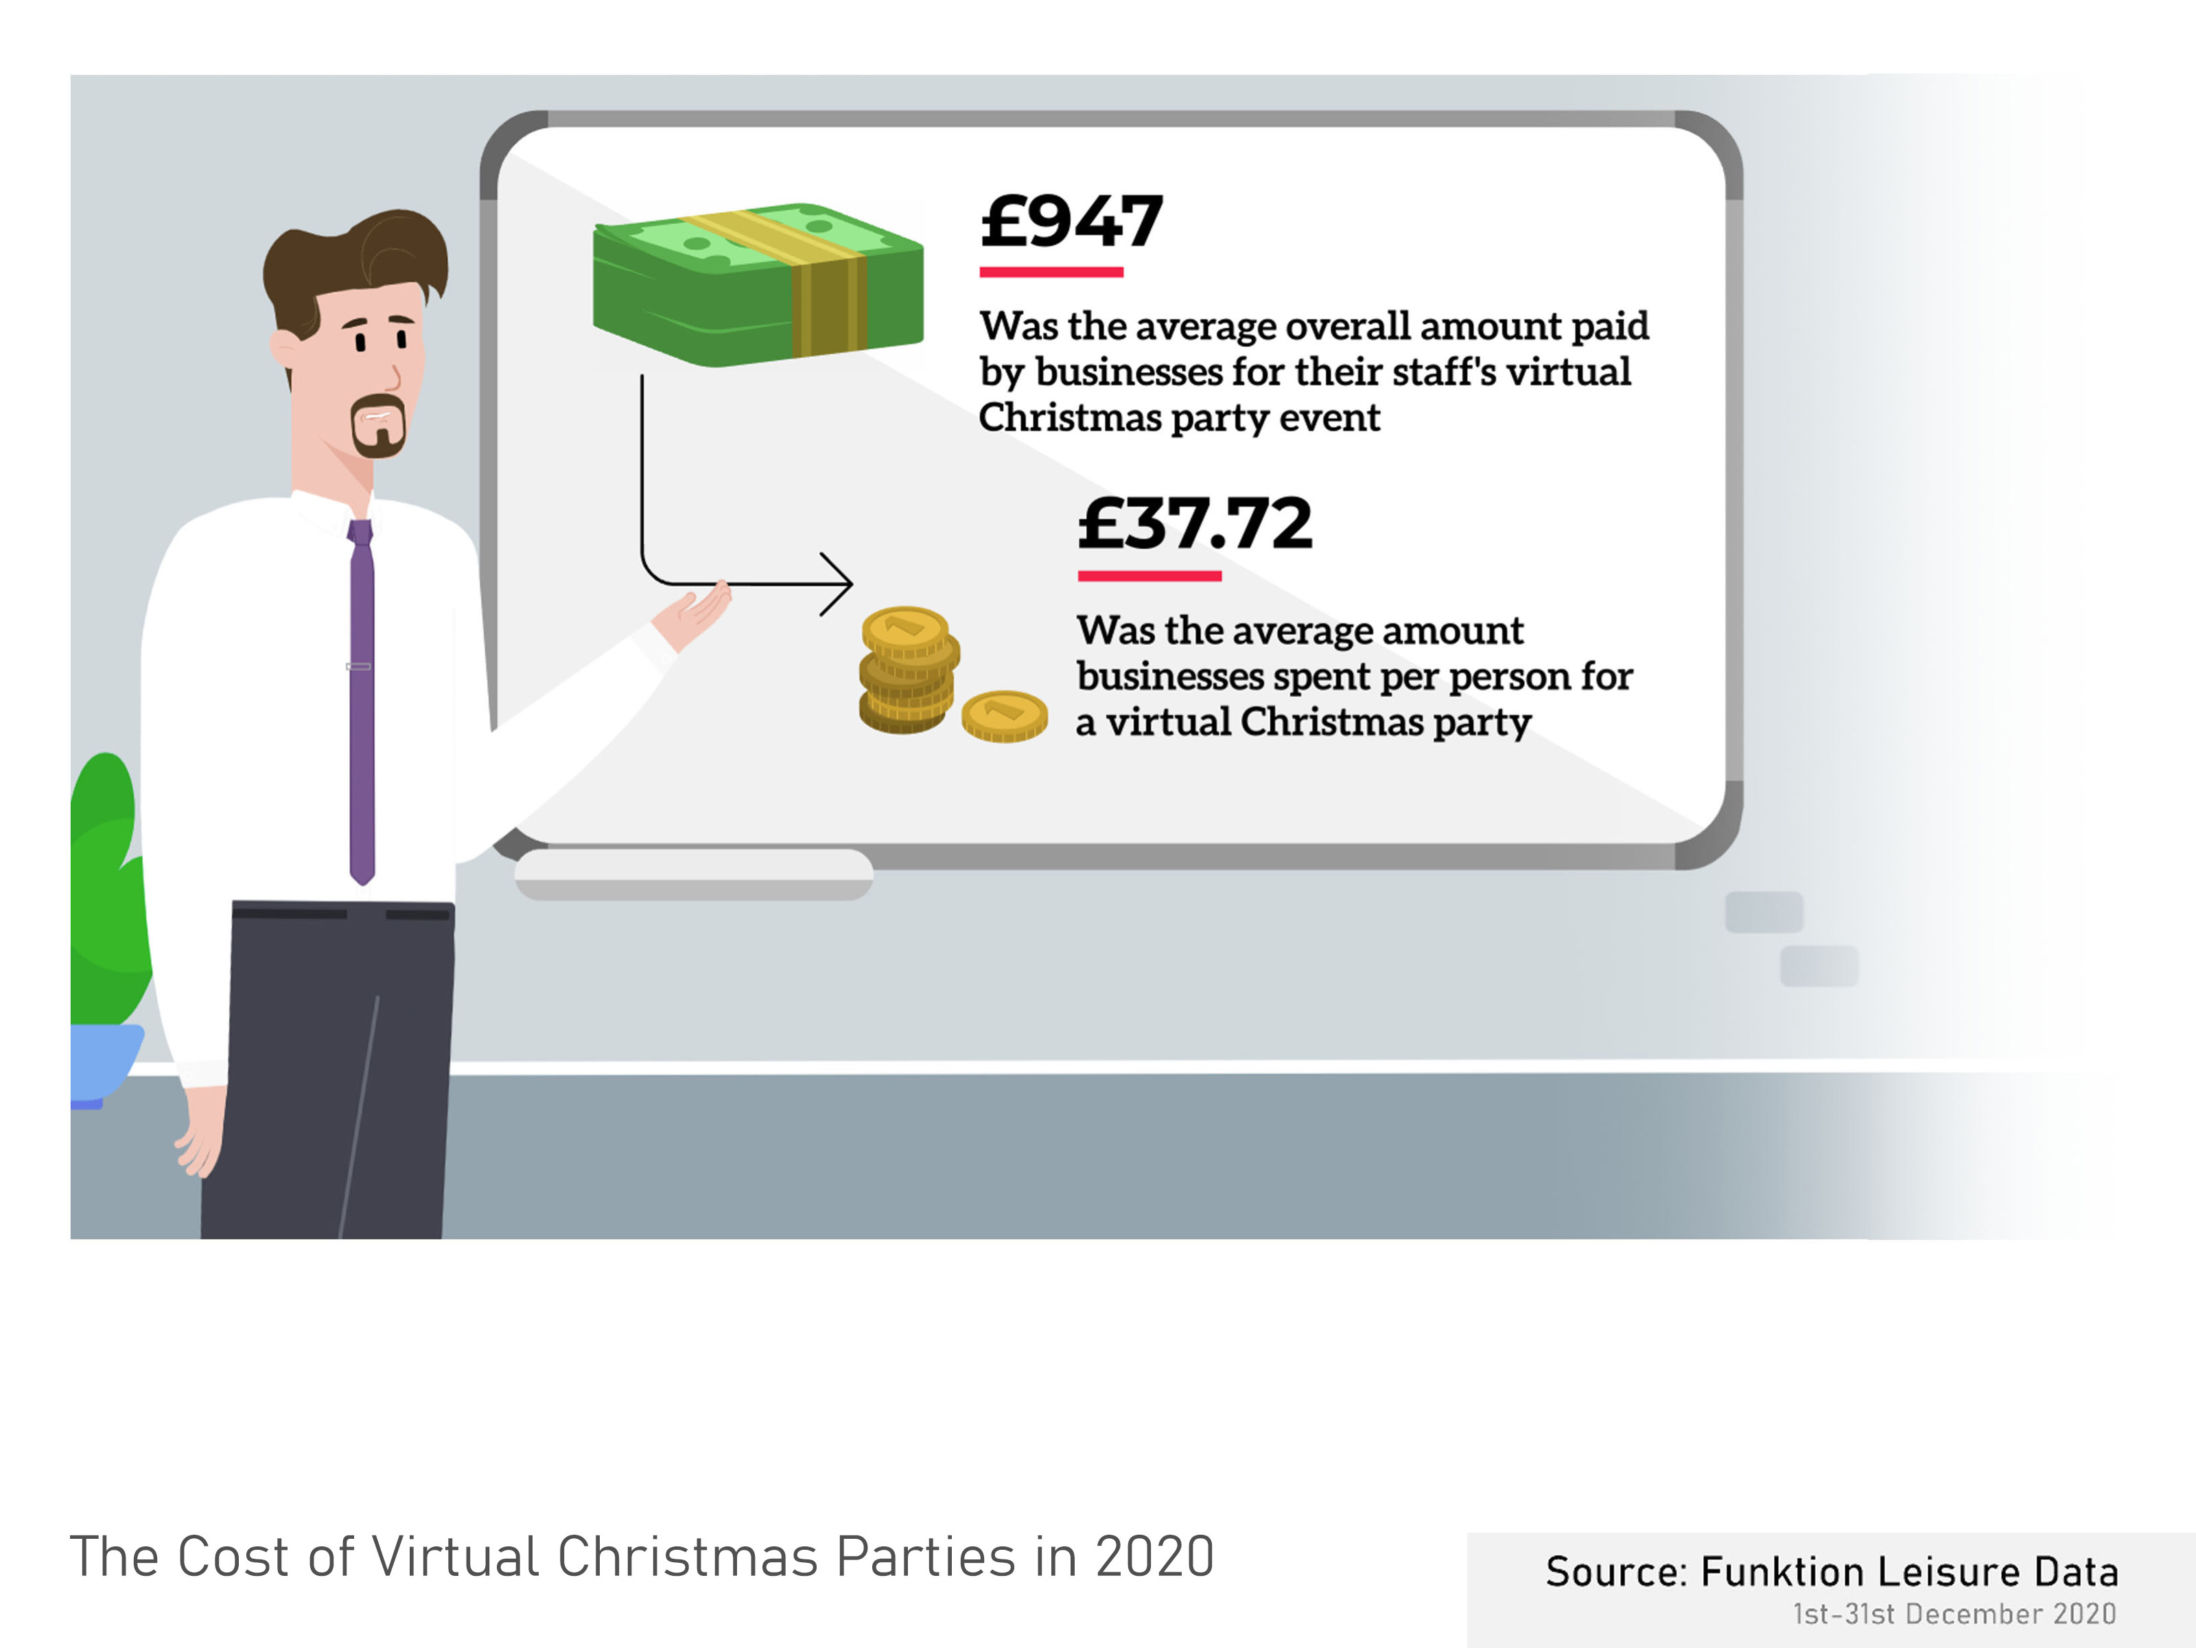 The Cost of Virtual Christmas Parties in 2020